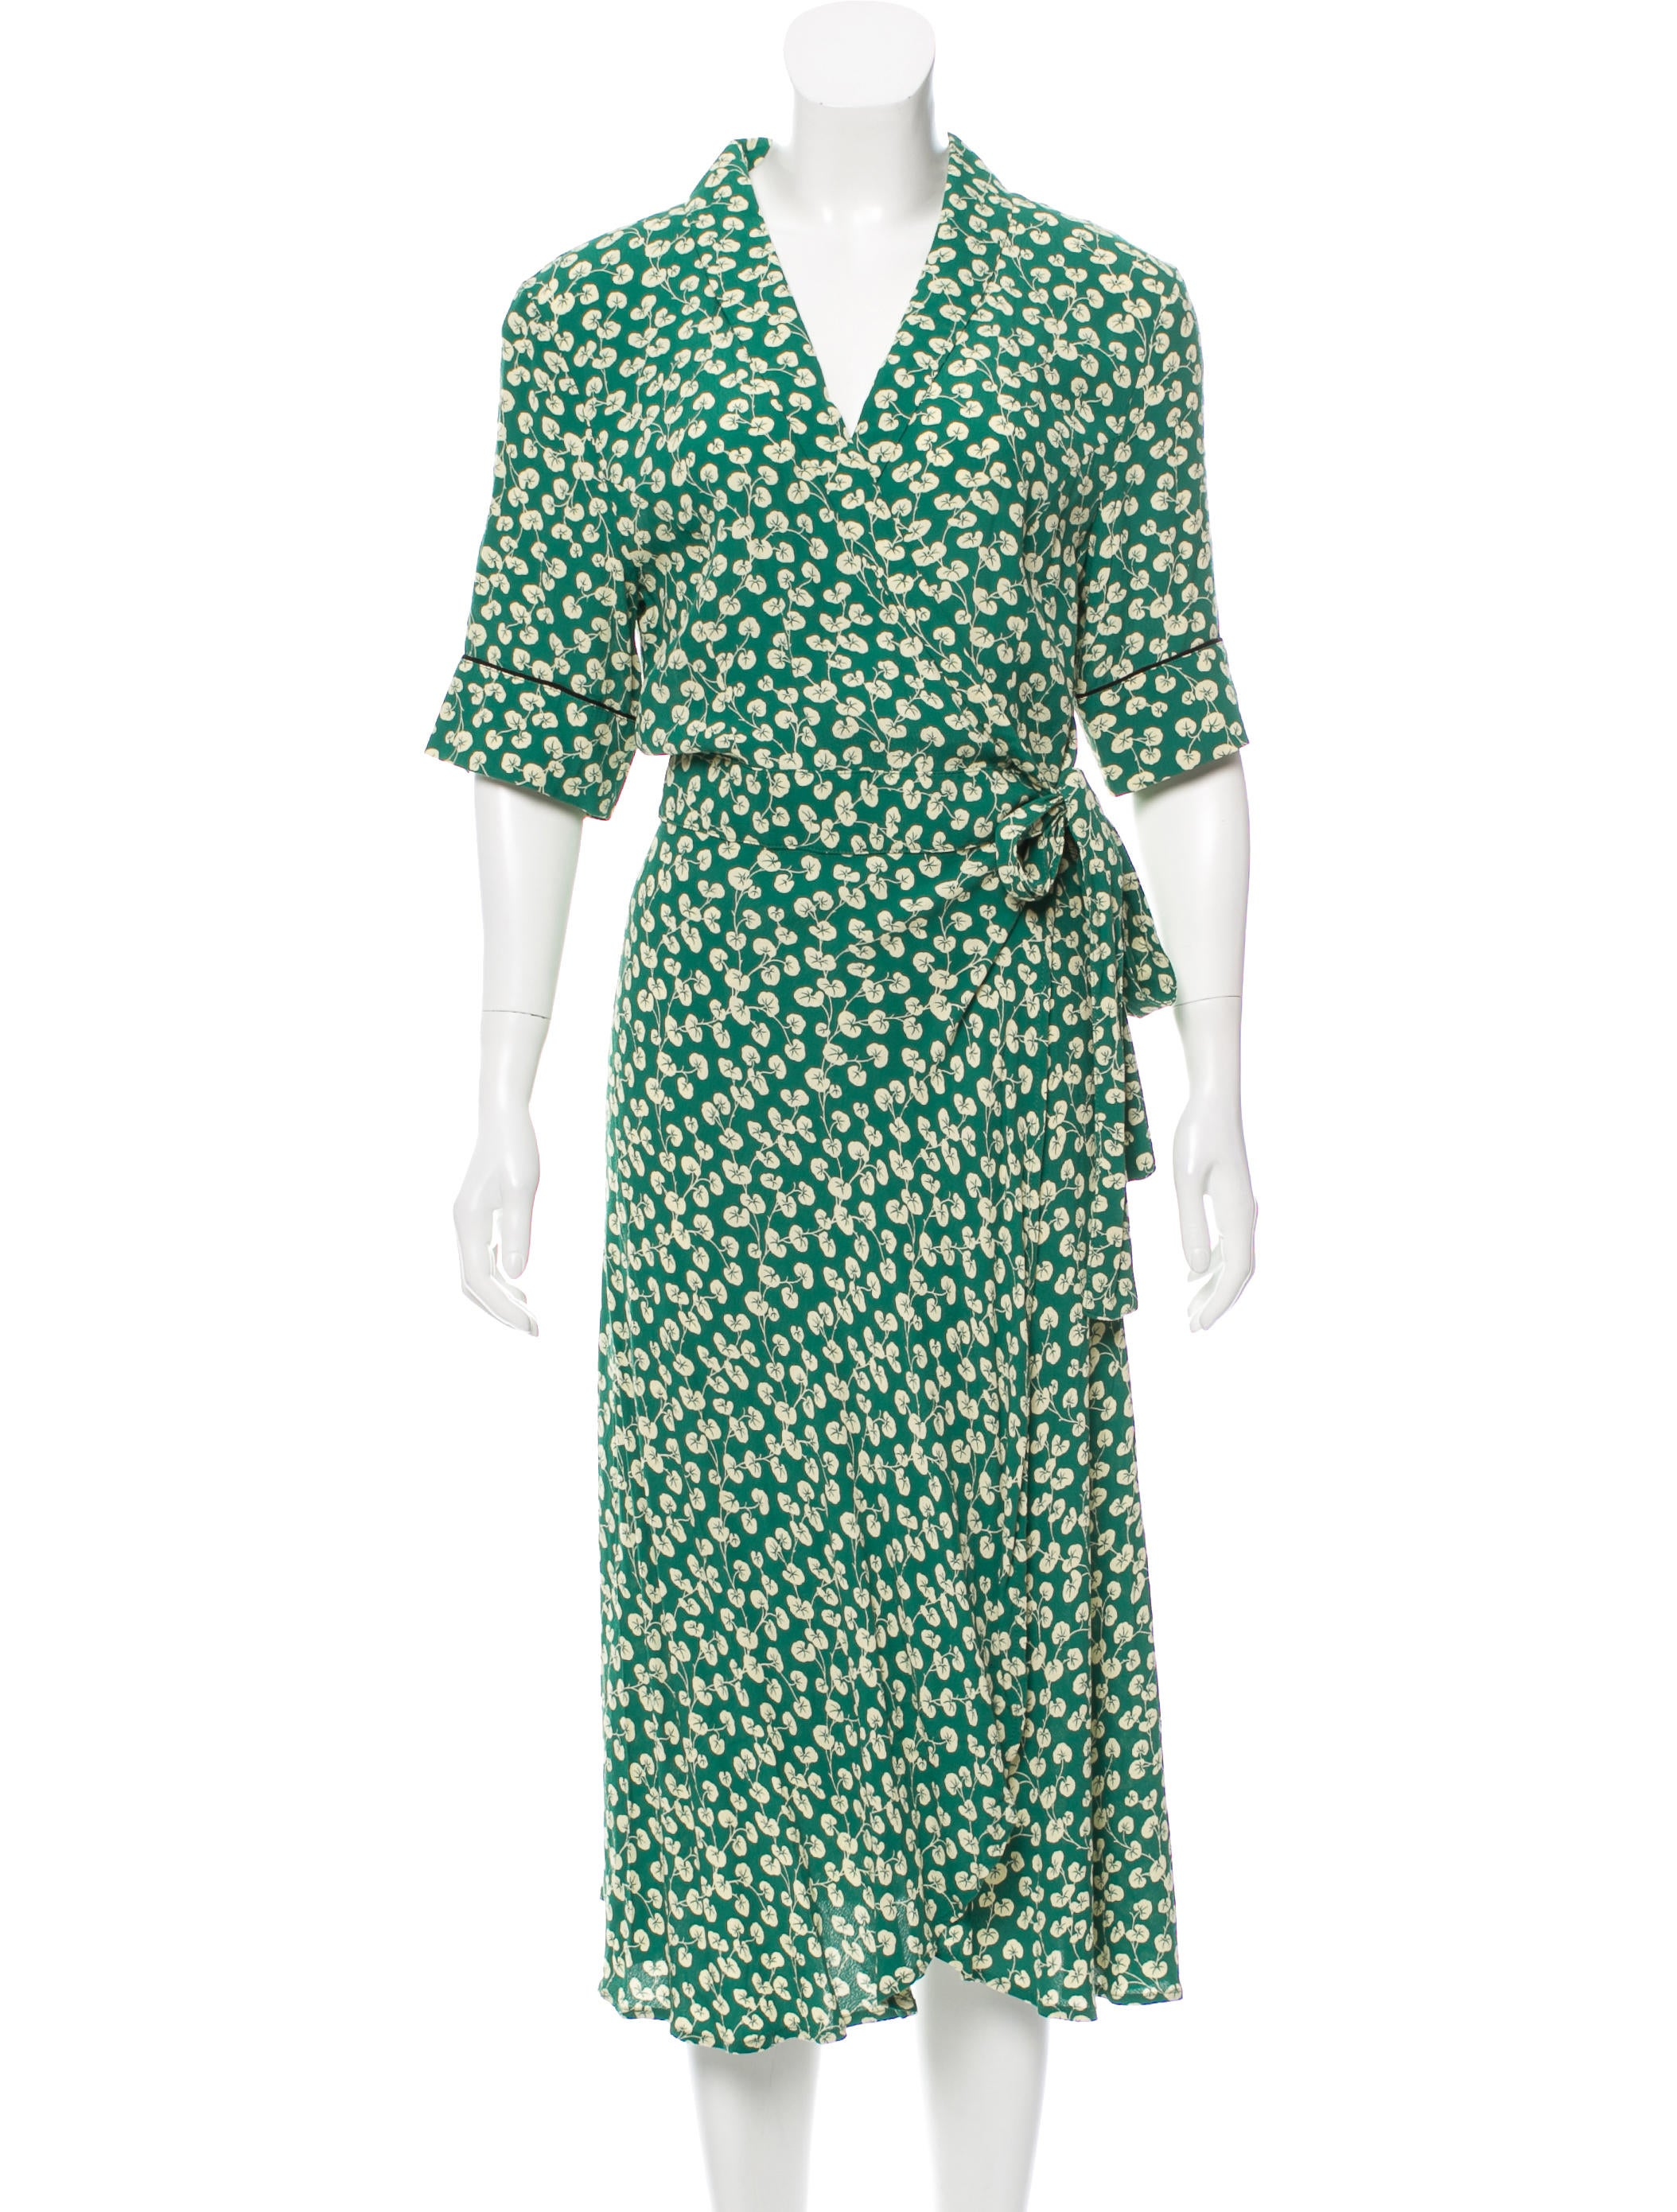 f1123dba Ganni Dalton Wrap Dress w/ Tags - Clothing - WZG20710 | The RealReal